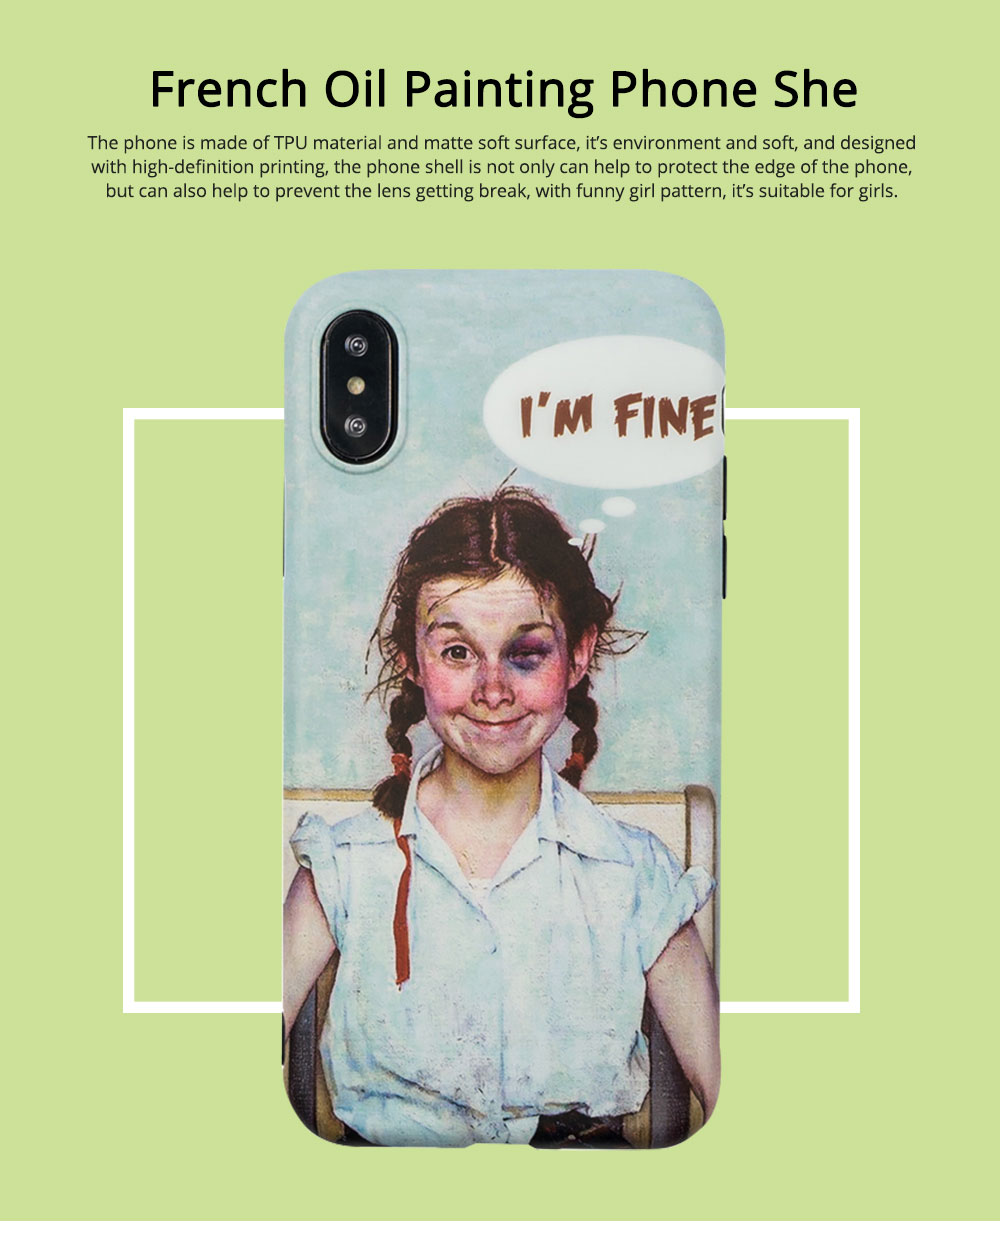 French Oil Printing Phone Case TPU Full Enclosed Protective Shell Compatible for iPhone 6 6s 7 8 XS Max XR 7P 8P with Funny Girl Print 0